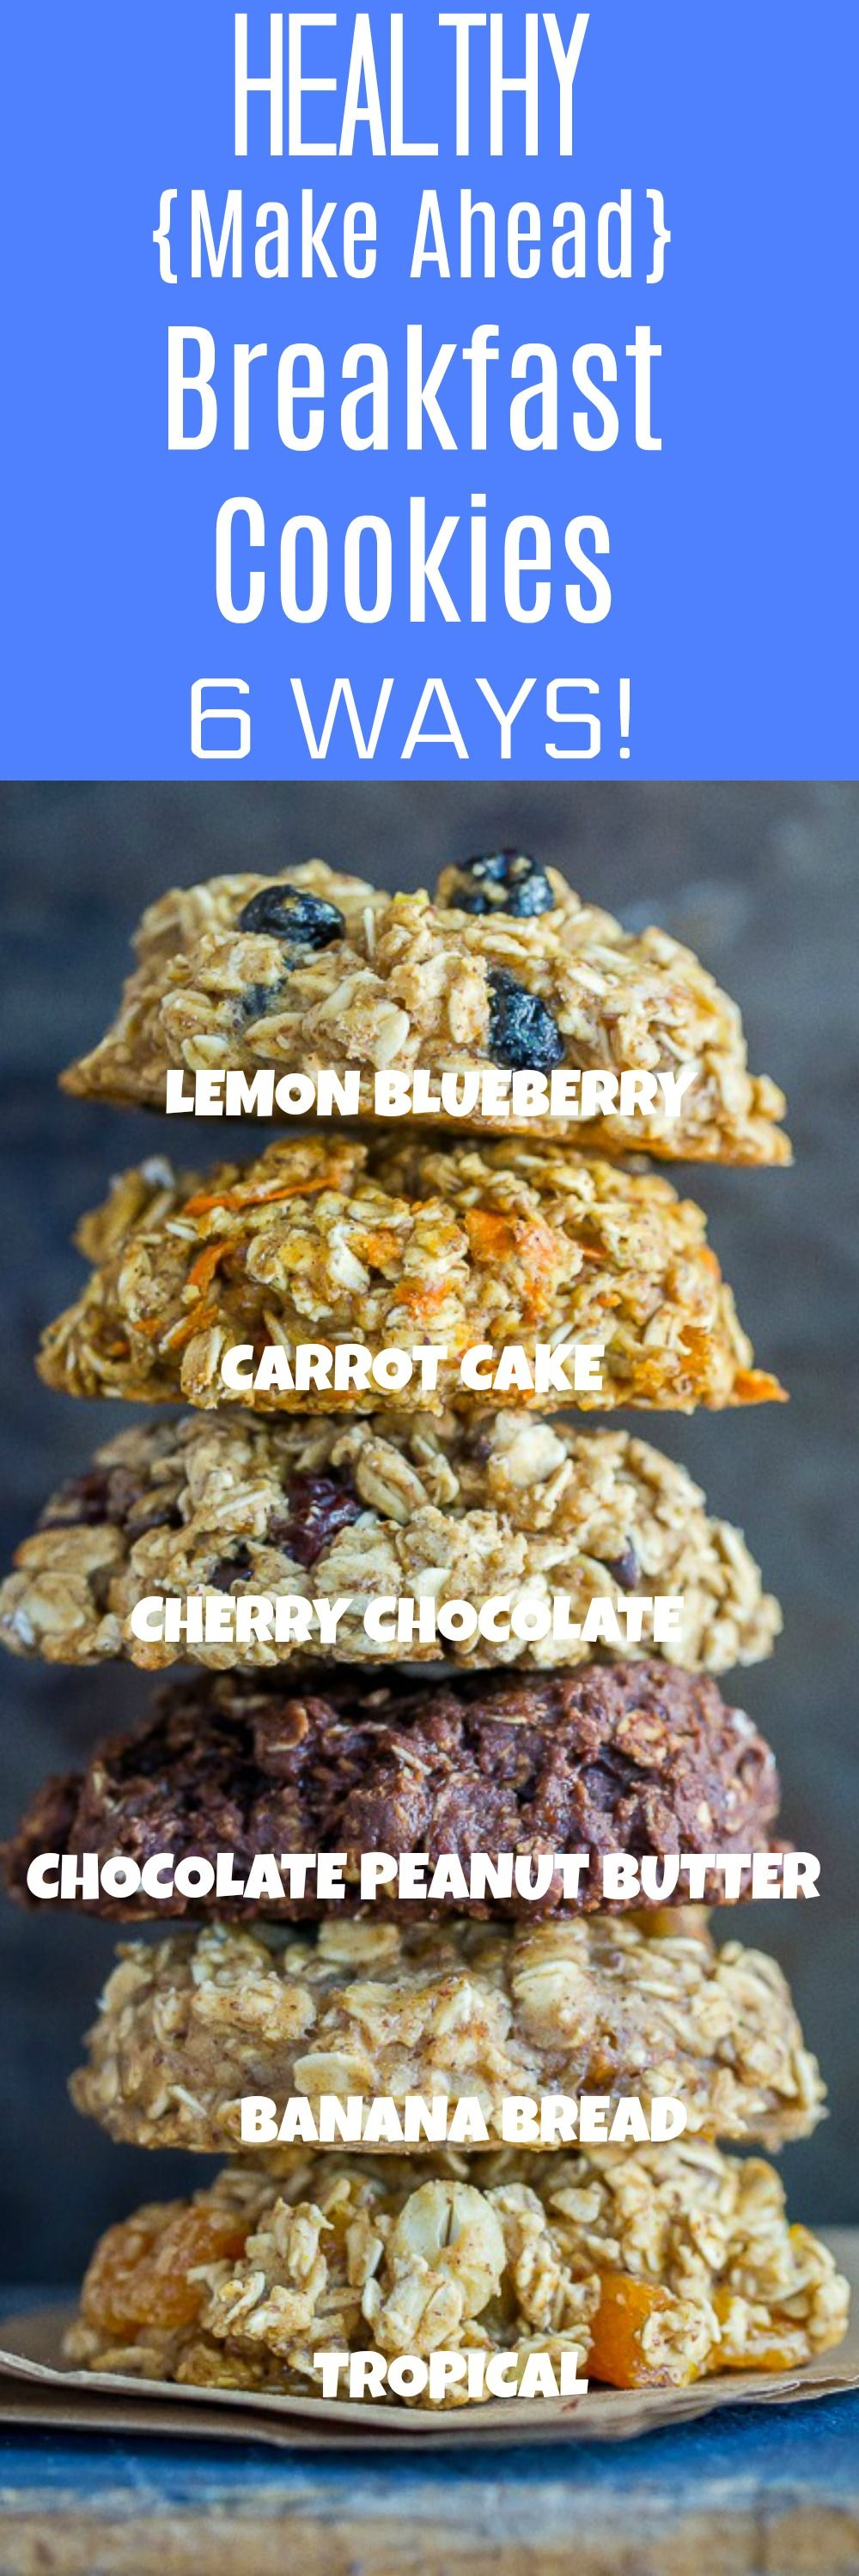 177 best Healthy Creations images on Pinterest